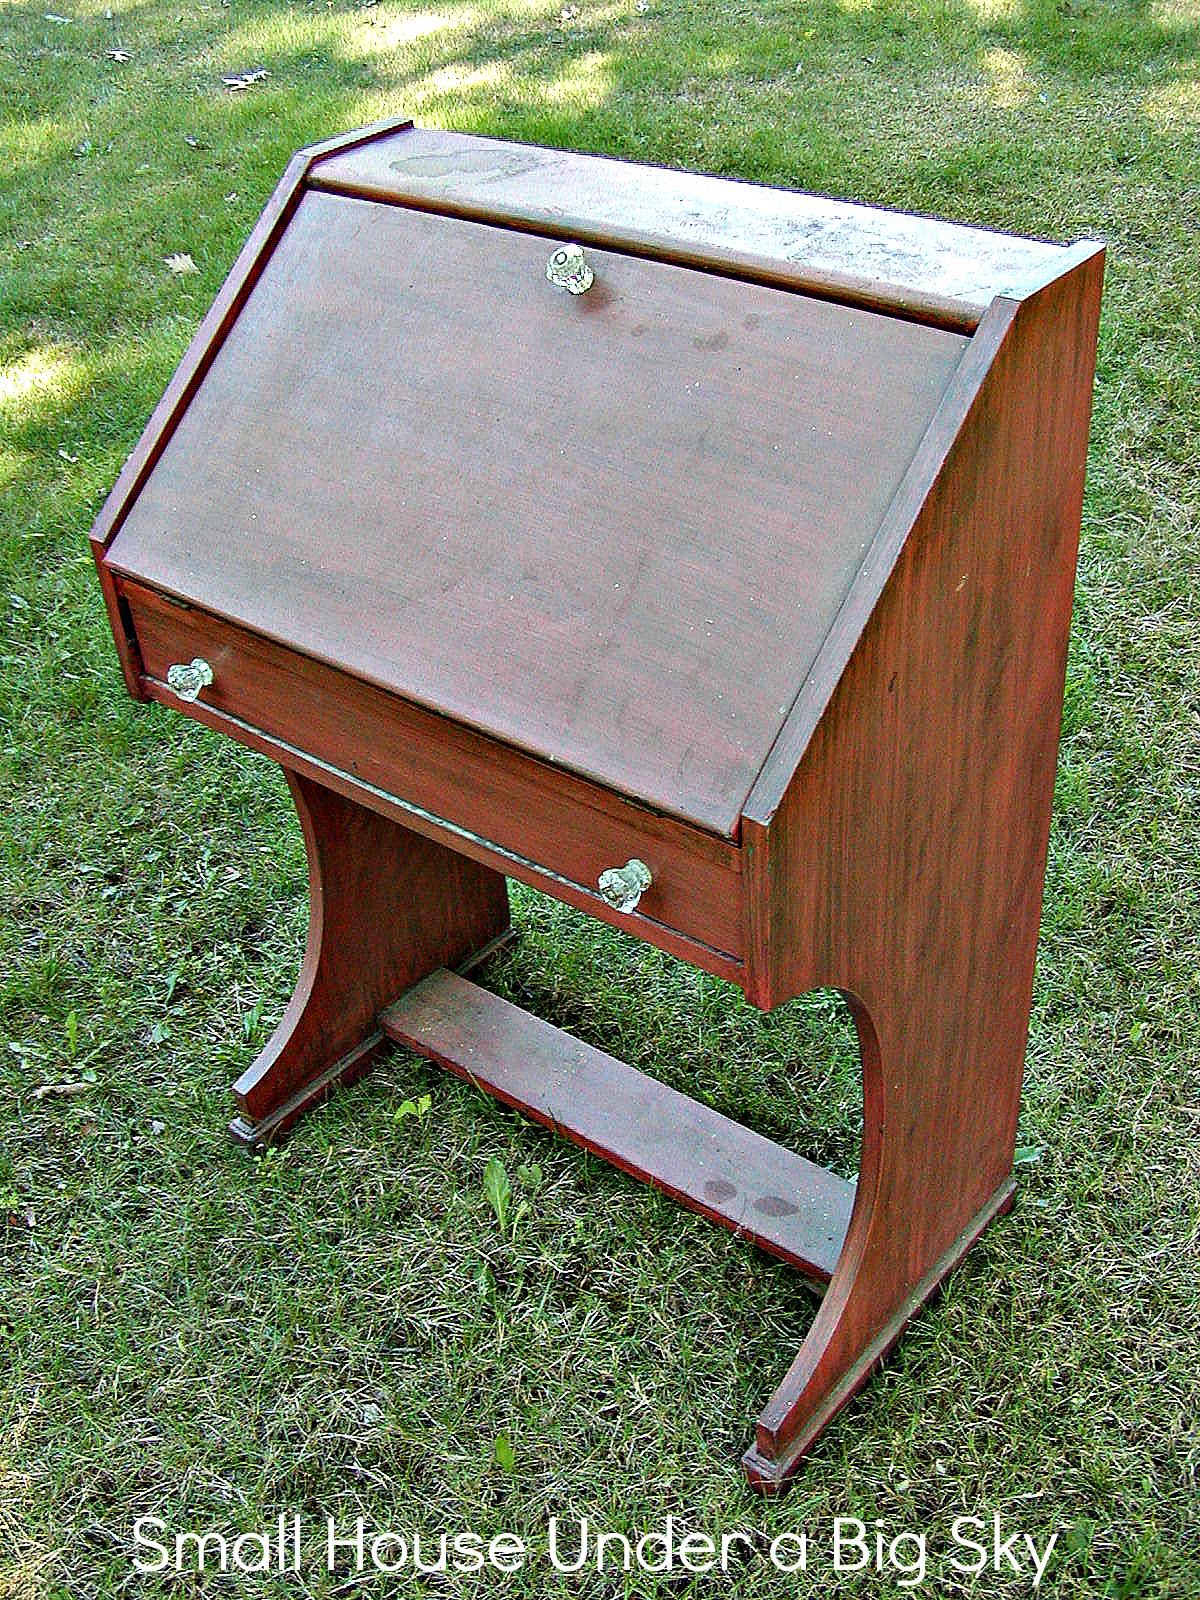 Woodworking Plans For Drop Front Desk Easy Woodworking Projects For Gifts